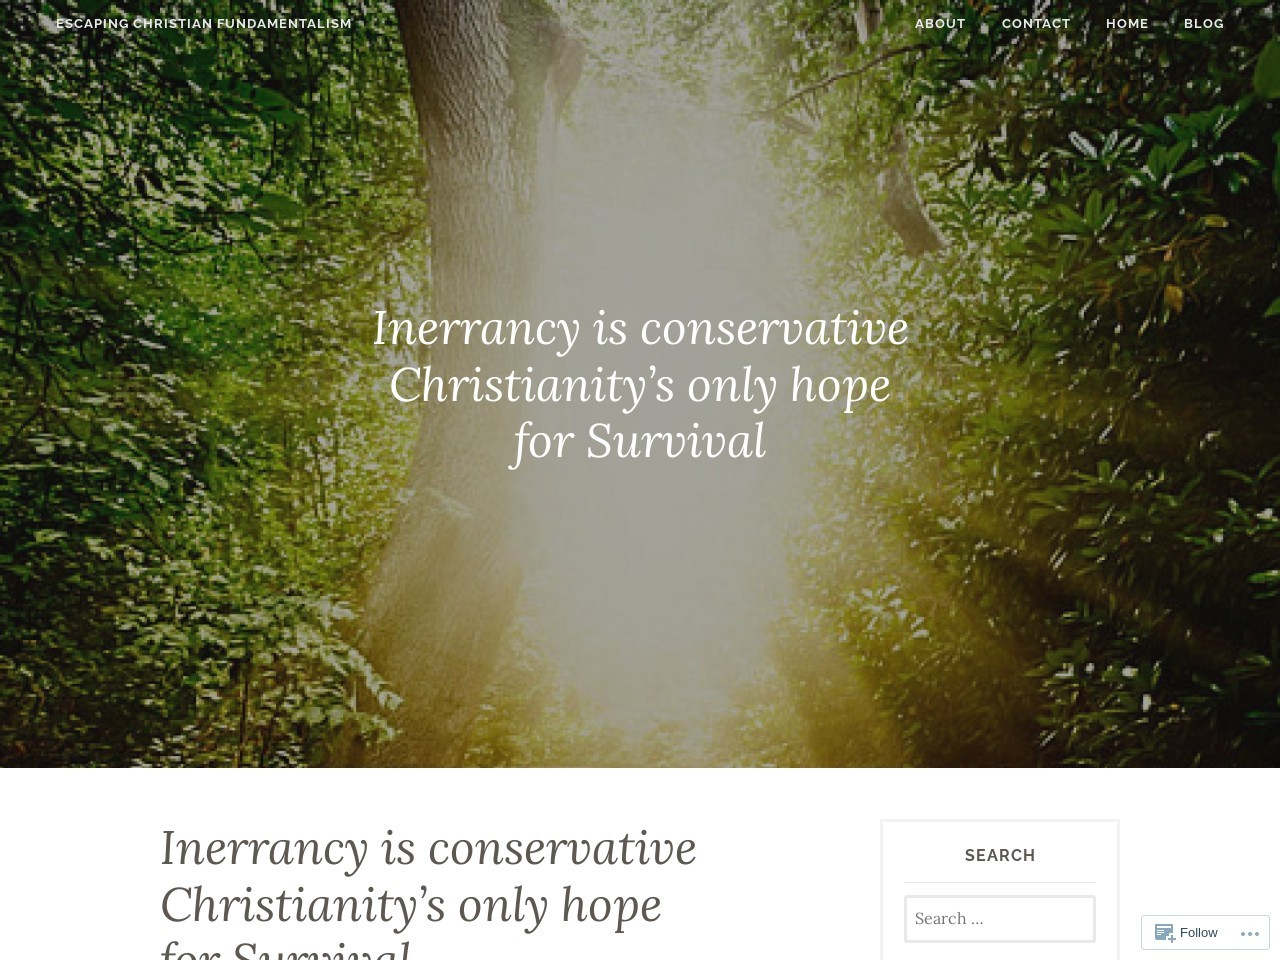 Inerrancy is conservative Christianity's only hope for Survival